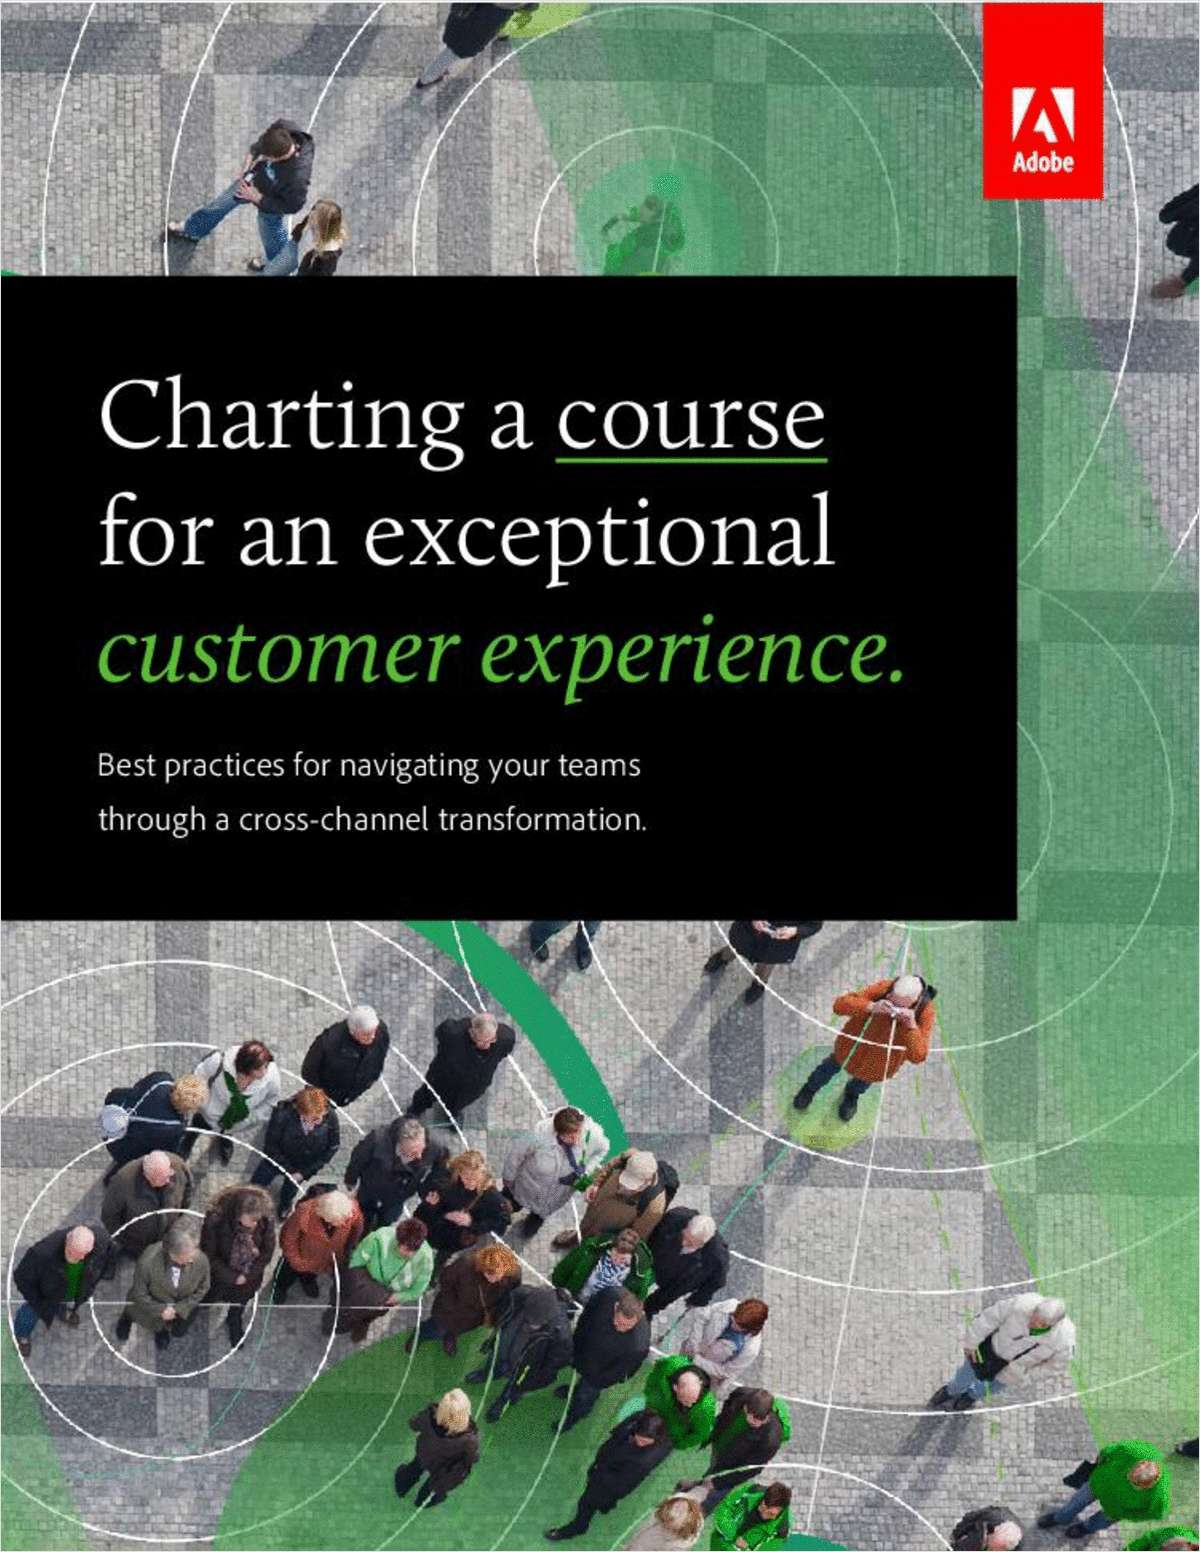 Charting a course for an exceptional customer experience